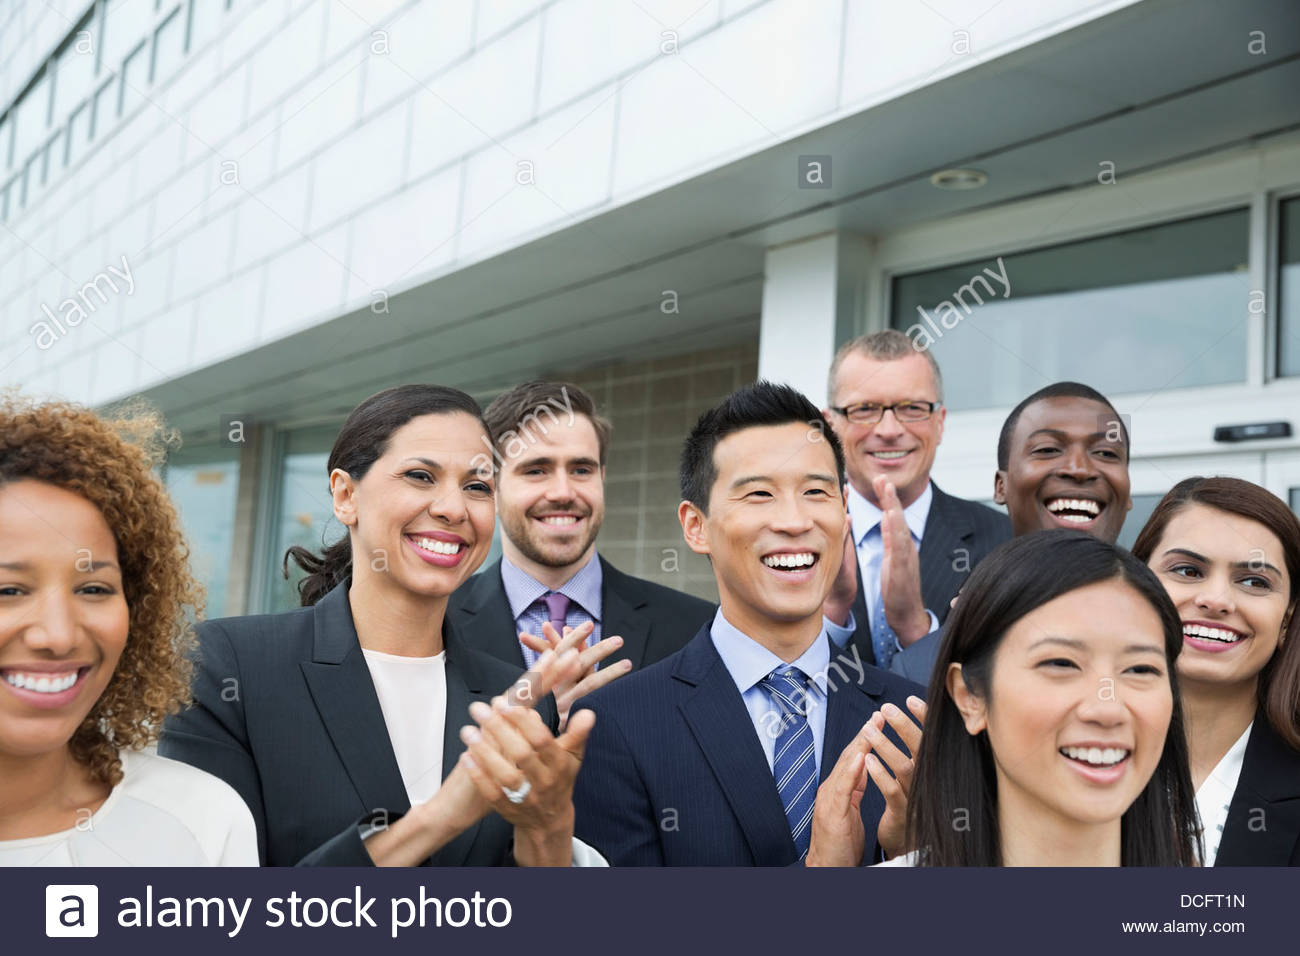 Group of business people clapping - Stock Image